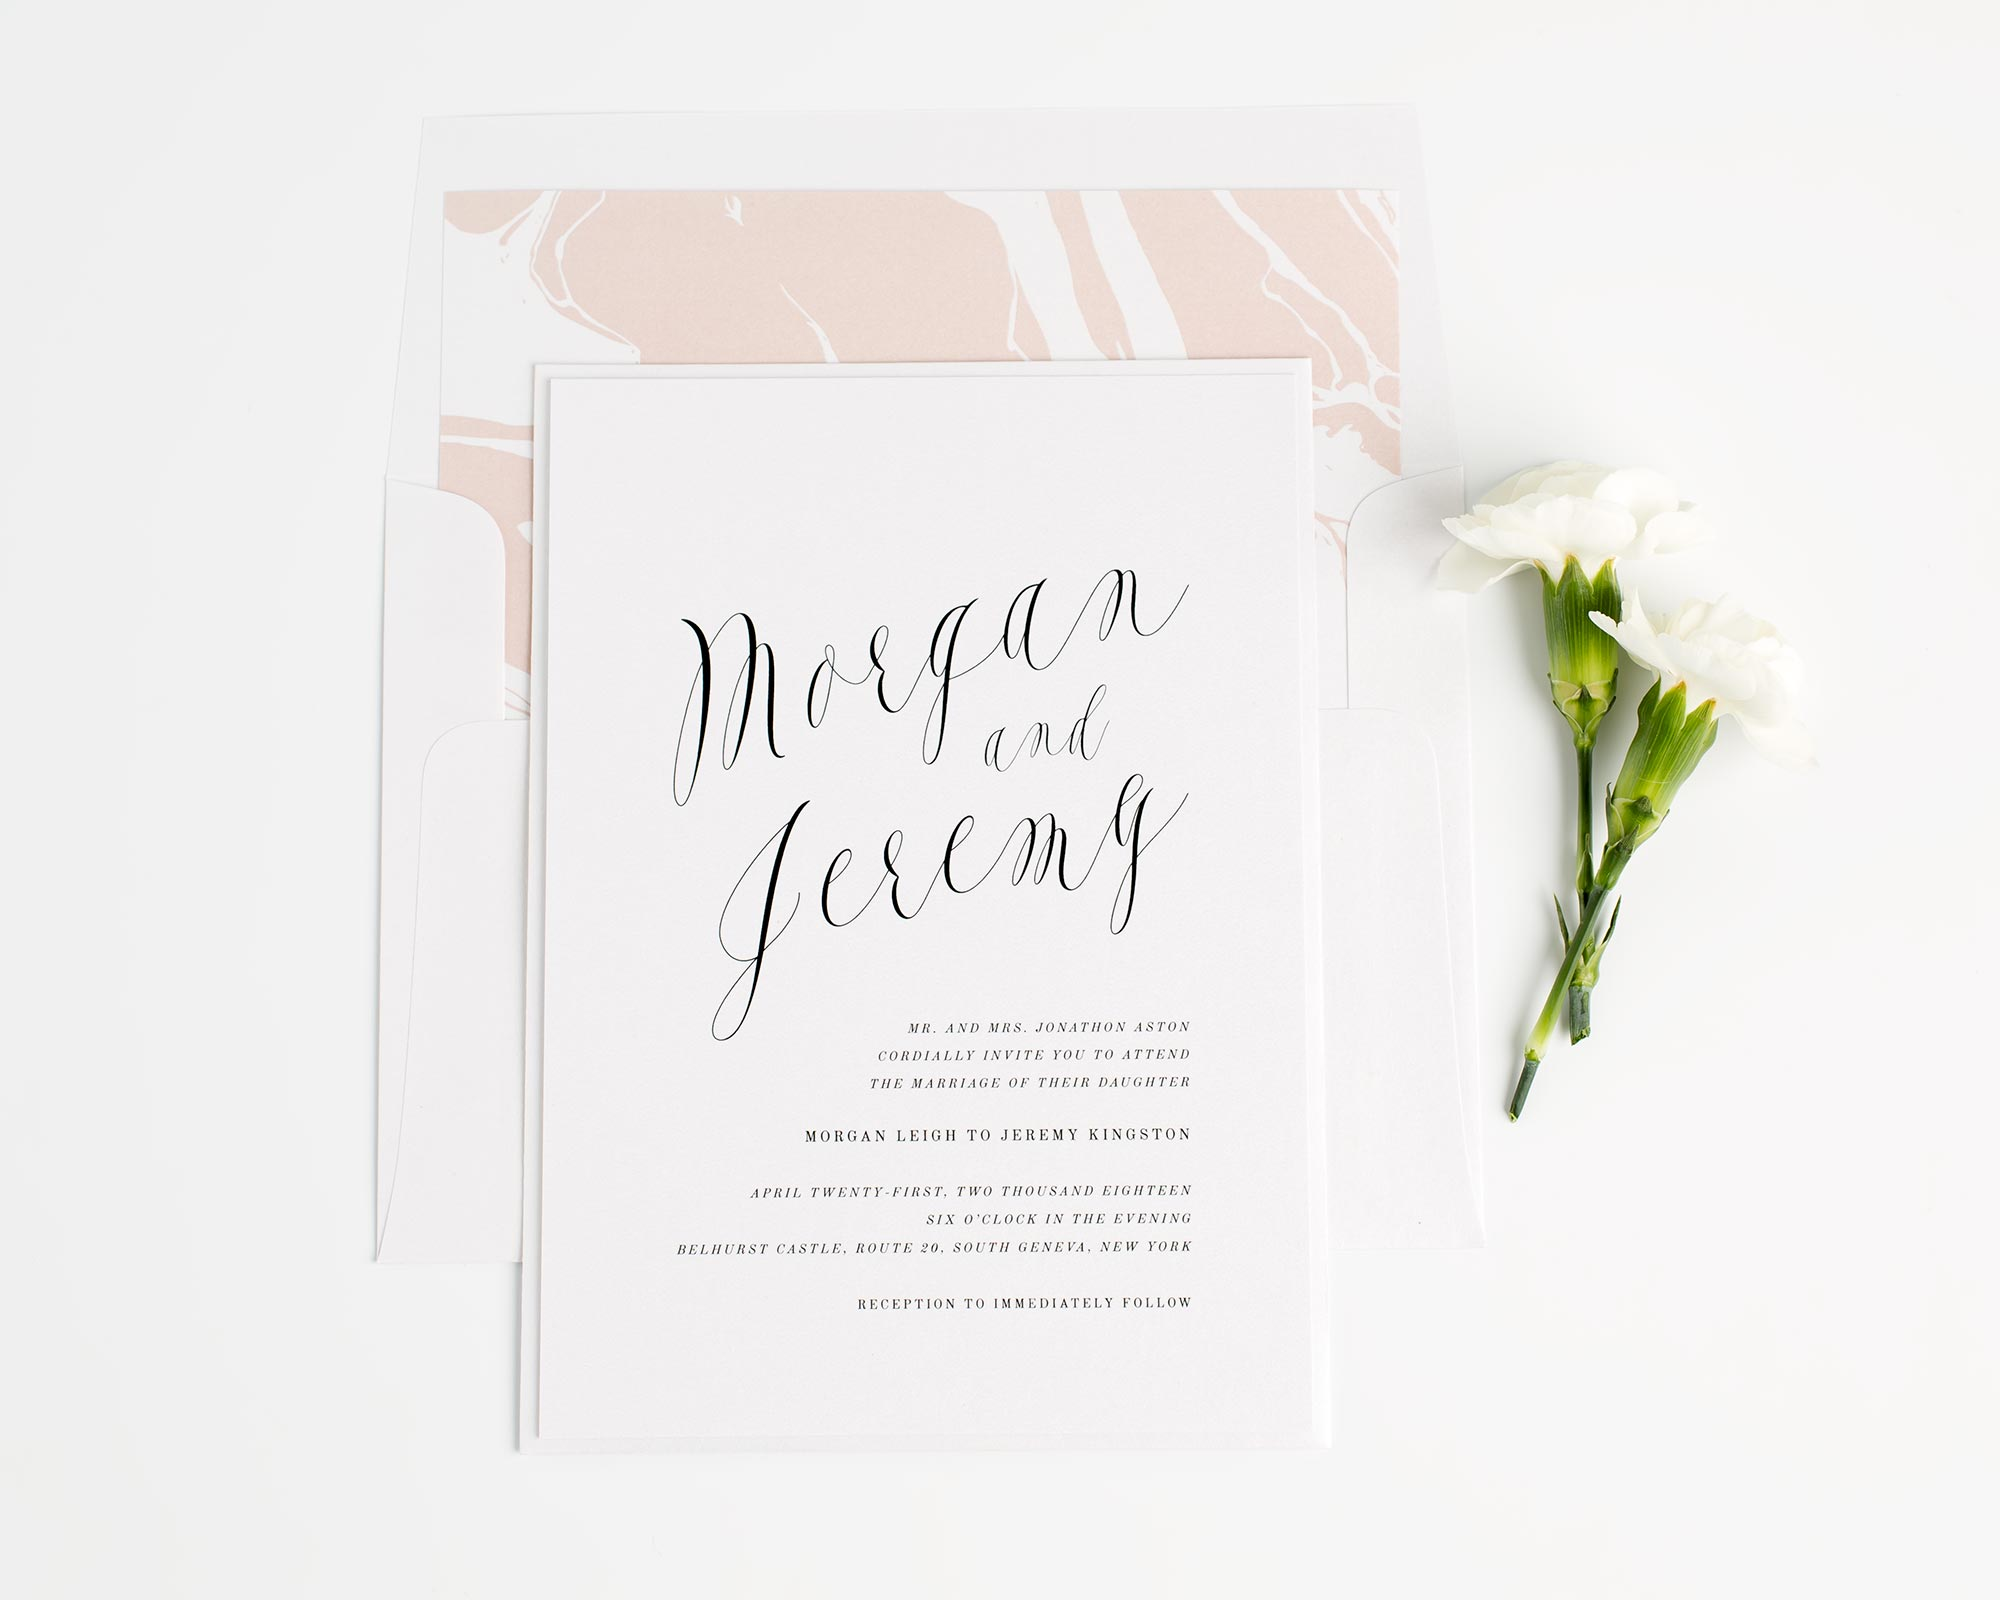 Ethereal Wedding Invitations in Rose Gold Wedding Invitations